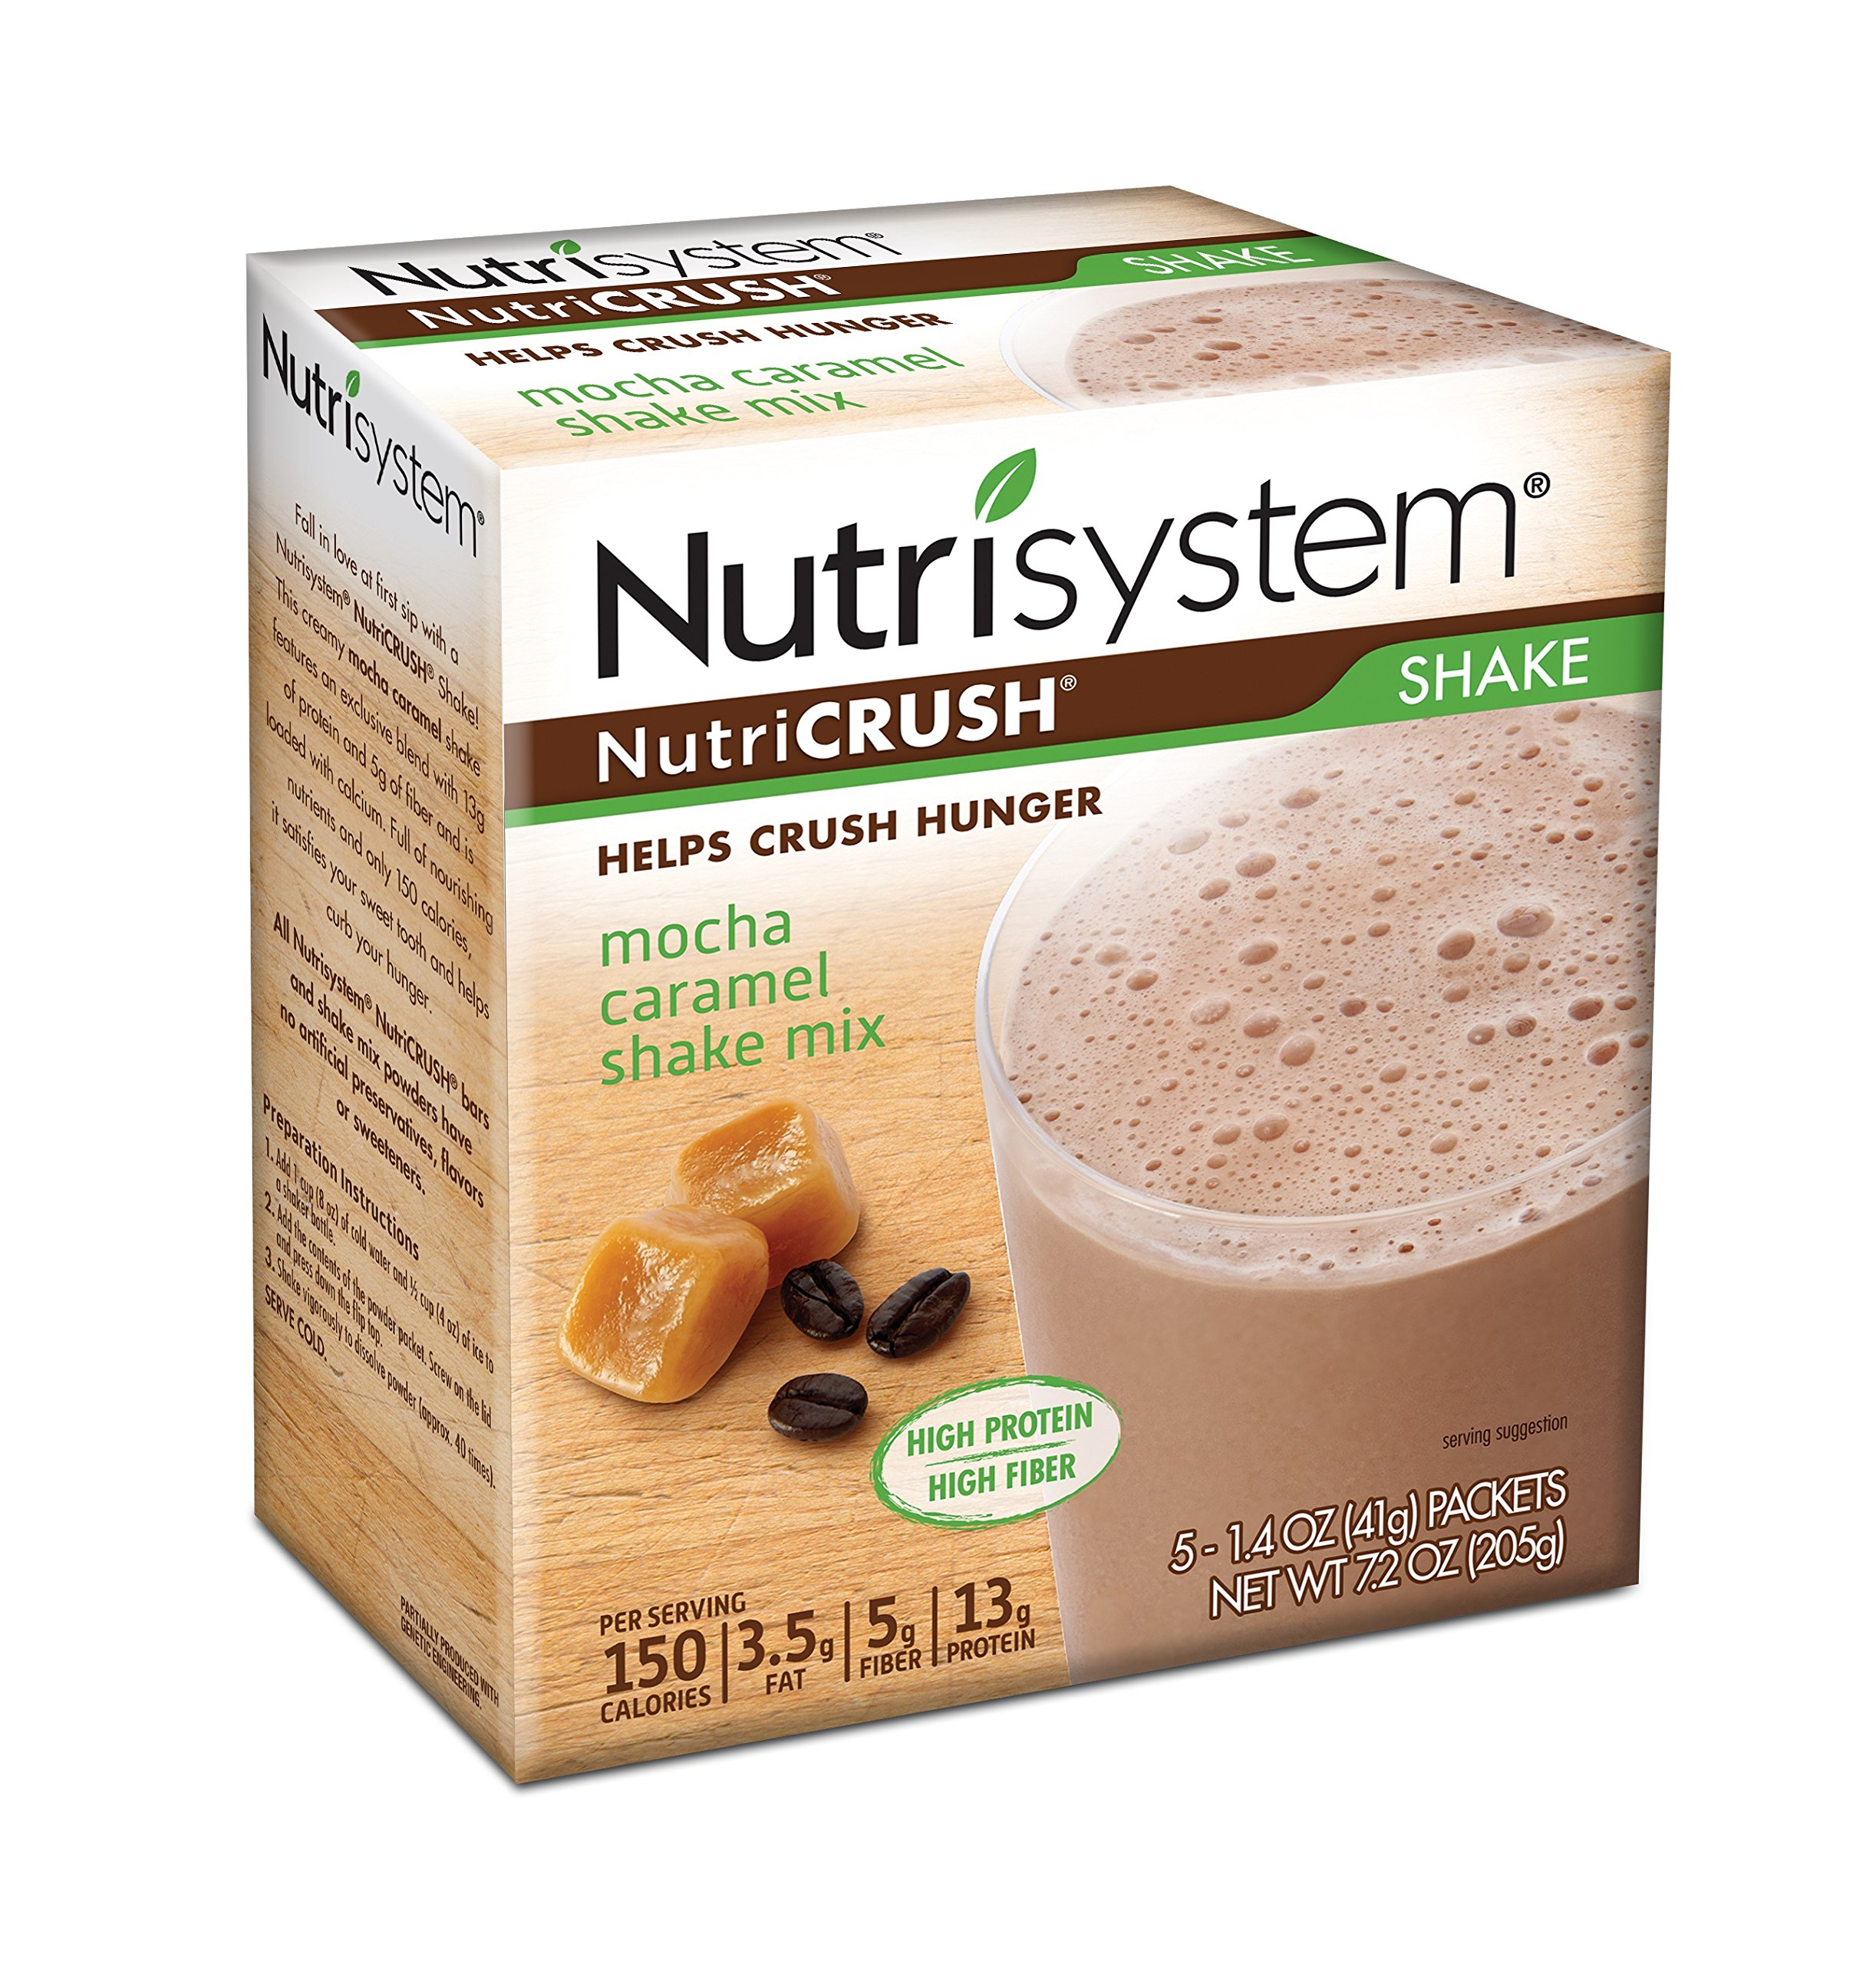 Nutrisystem® NutriCRUSH® Mocha Caramel Shake Mix, 20 ct. LIMITED TIME ONLY PROMOTION by Nutrisystem